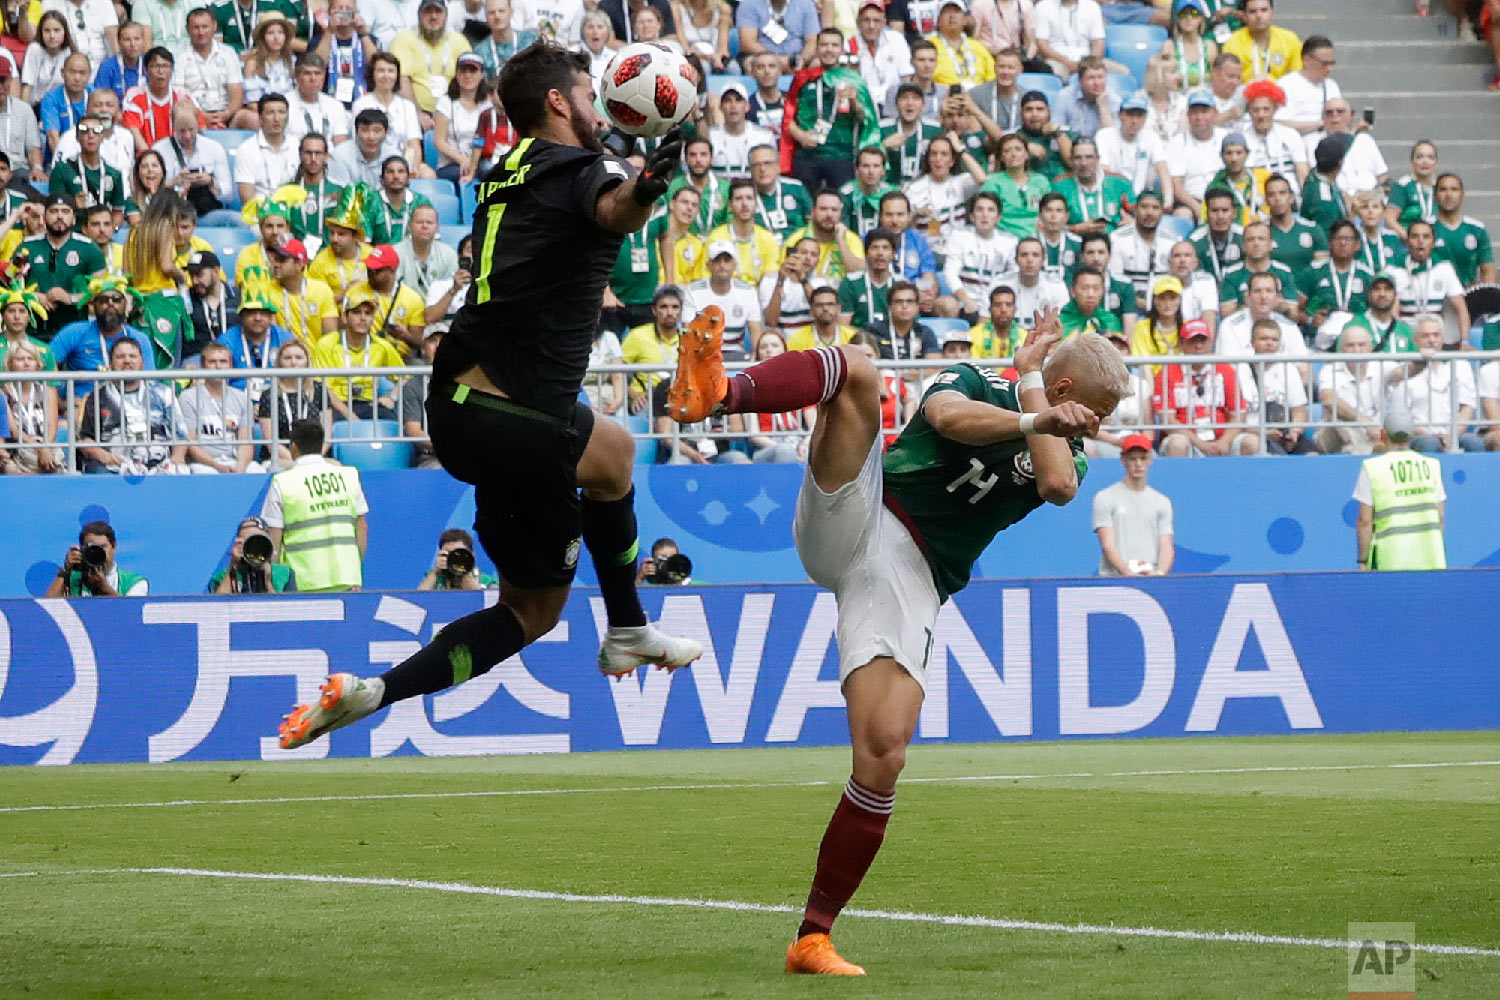 Brazil goalkeeper Alisson, left, blocks a kick by Mexico's Javier Hernandez, right, during the round of 16 match between Brazil and Mexico at the 2018 soccer World Cup in the Samara Arena, in Samara, Russia, Monday, July 2, 2018. (AP Photo/Andre Penner)